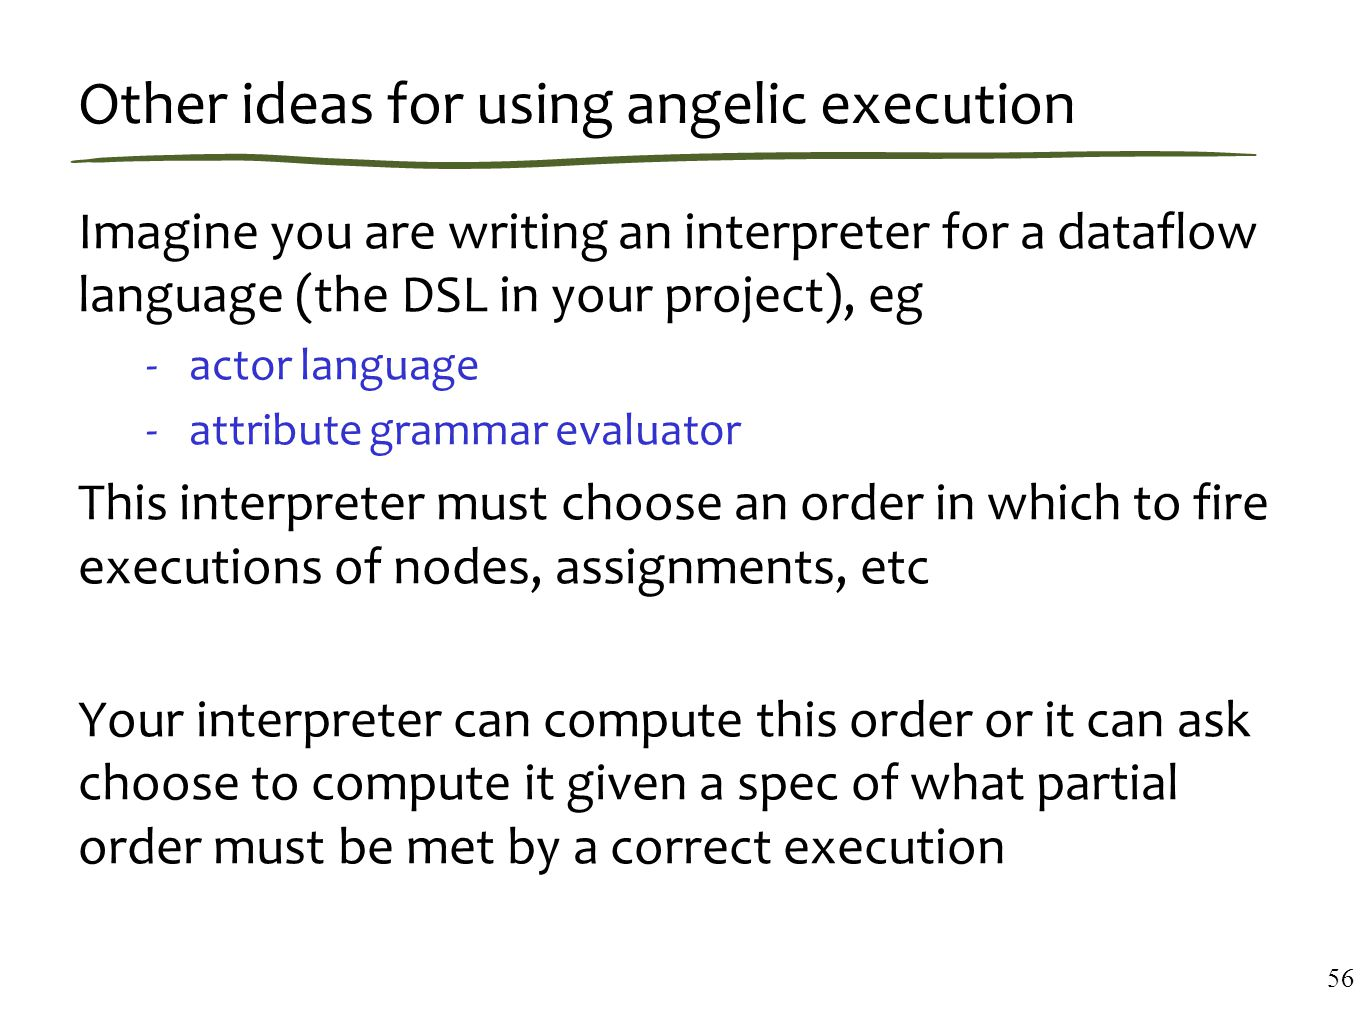 Other ideas for using angelic execution Imagine you are writing an interpreter for a dataflow language (the DSL in your project), eg -actor language -attribute grammar evaluator This interpreter must choose an order in which to fire executions of nodes, assignments, etc Your interpreter can compute this order or it can ask choose to compute it given a spec of what partial order must be met by a correct execution 56